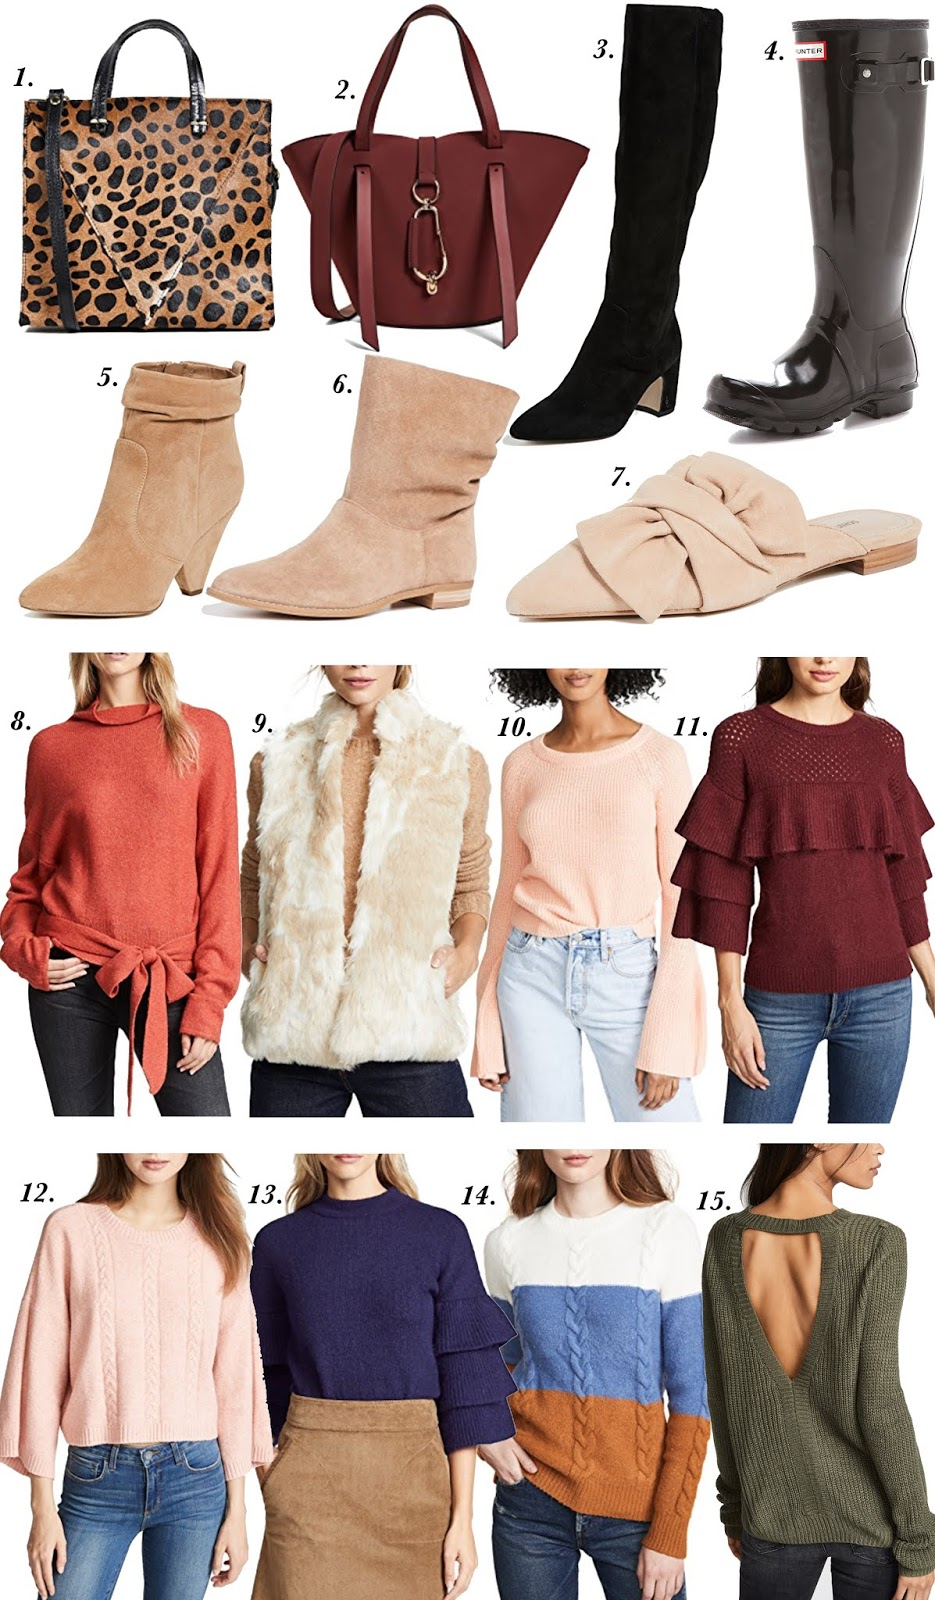 Shopbop Fall Sale - 20-25% off with code STOCKUP18 - Something Delightful Blog